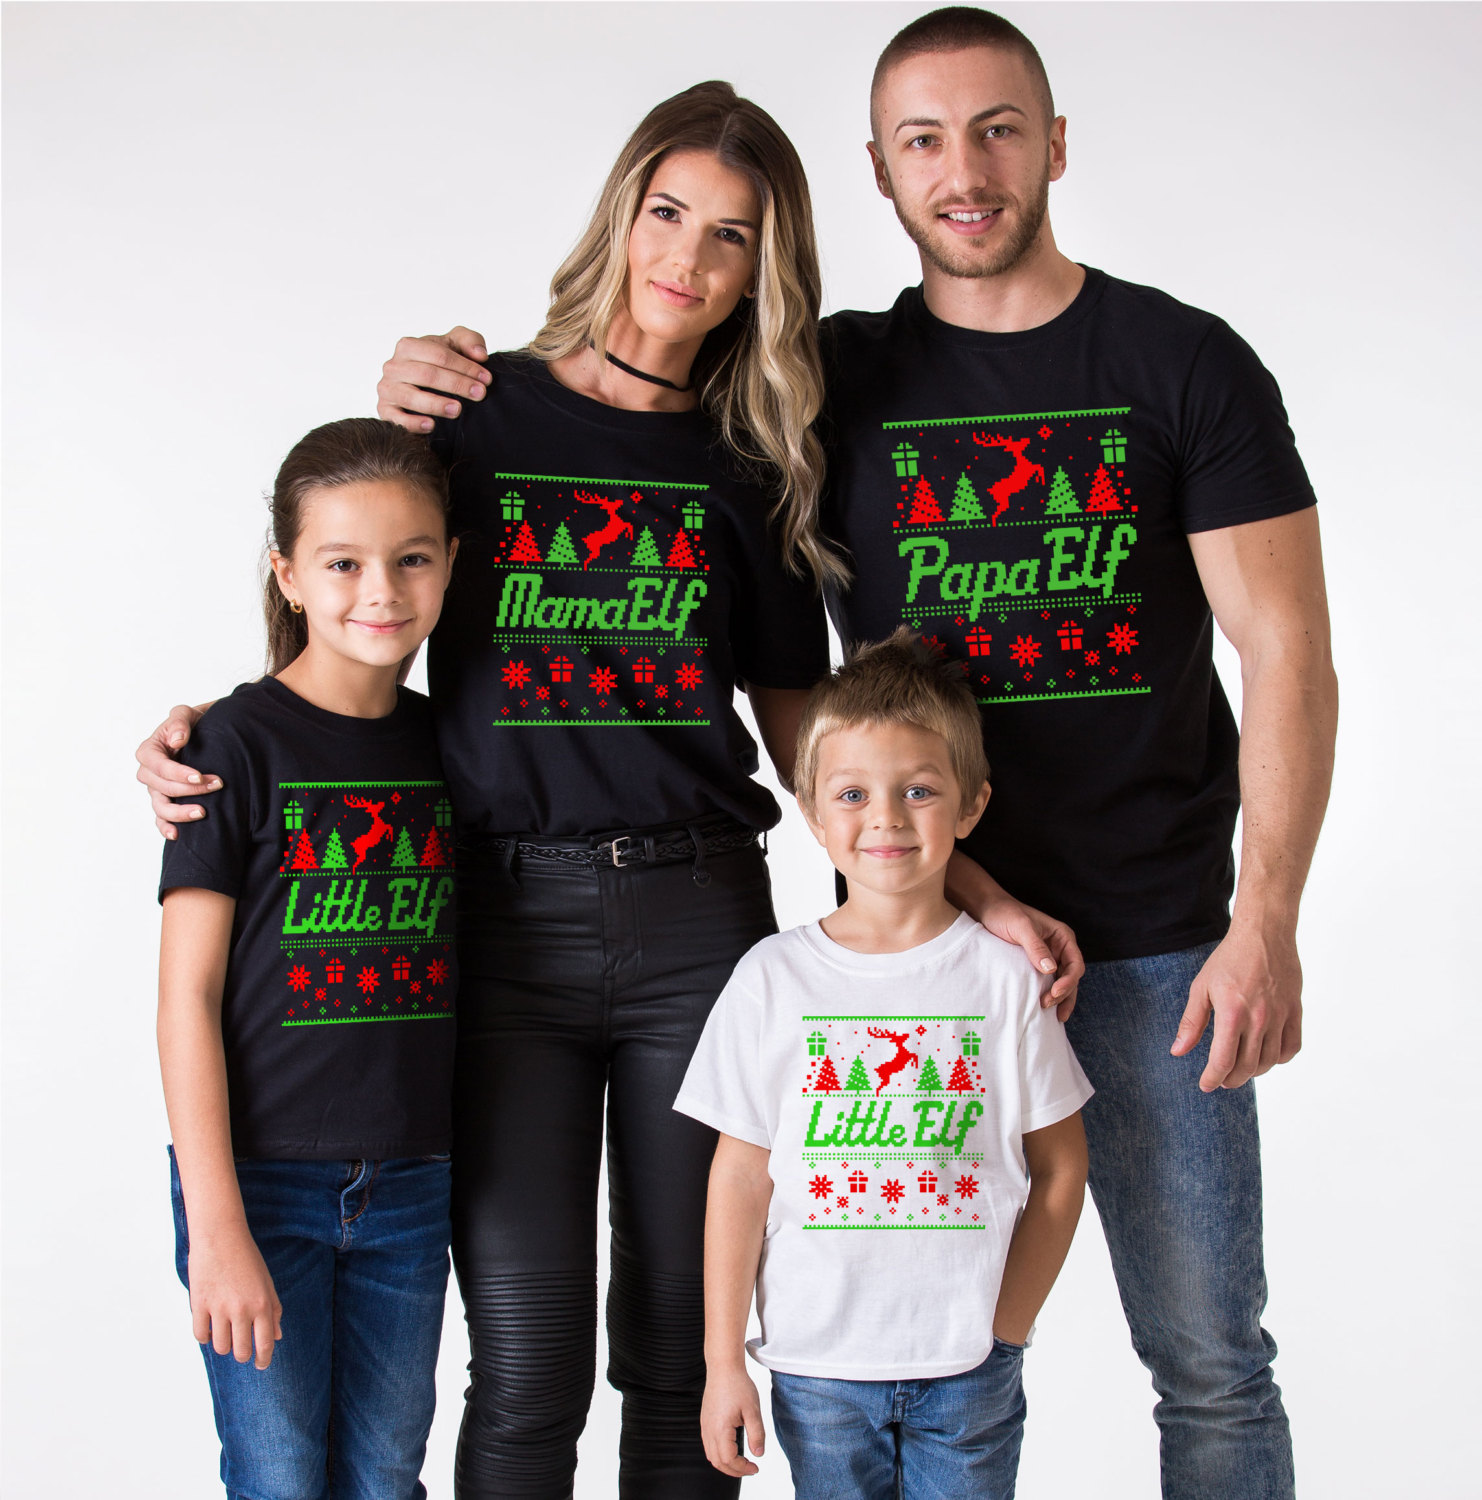 Matching Christmas Shirts For Family.Papa Elf Mama Elf Little Elf Matching Family Christmas Shirts